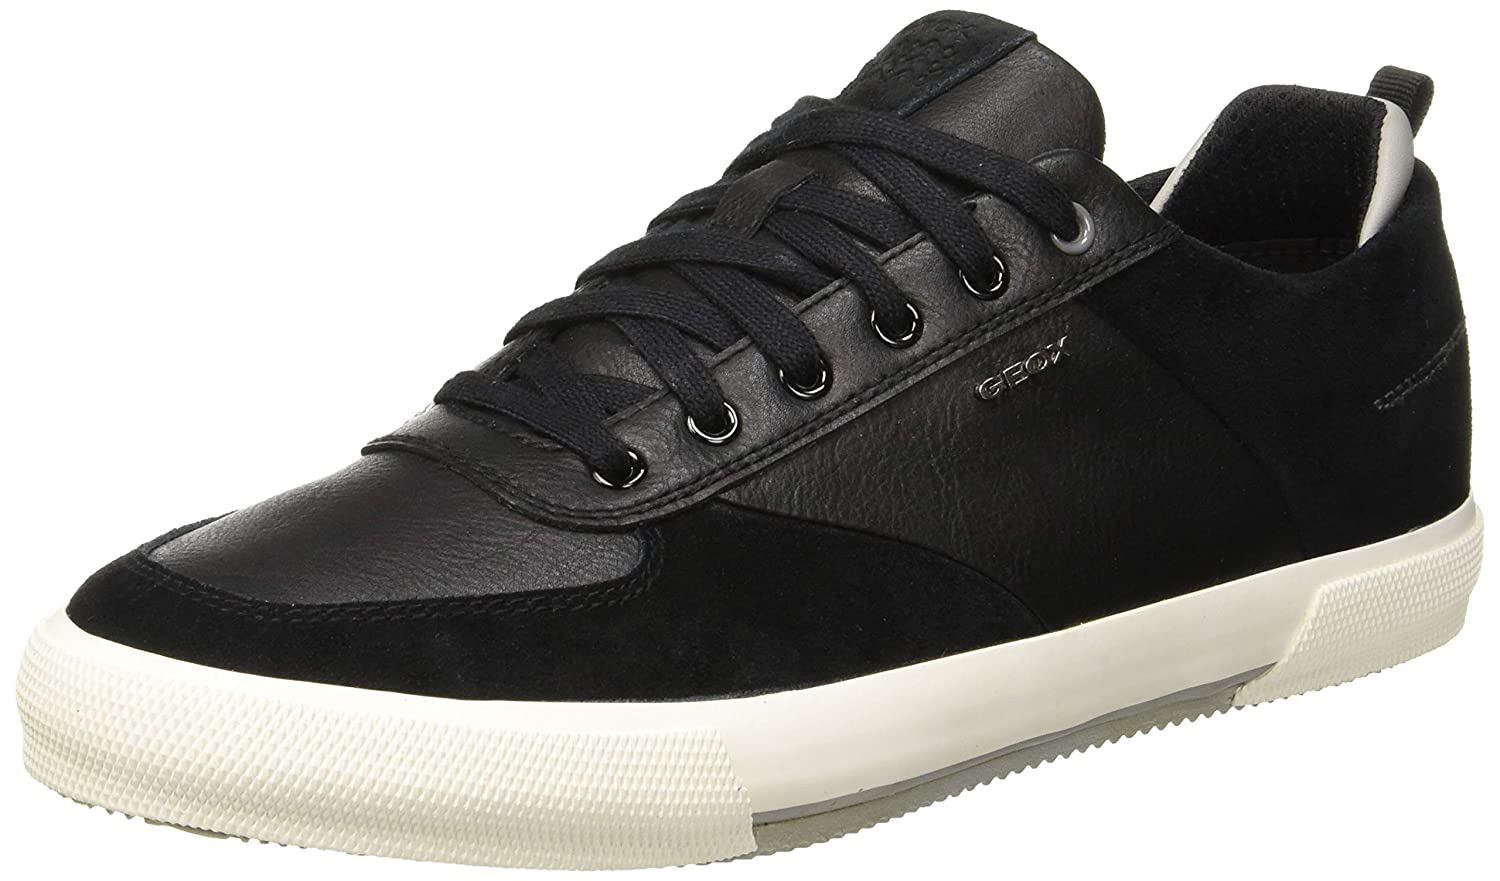 Geox Mens Waxed Leather Kaven Trainers Black